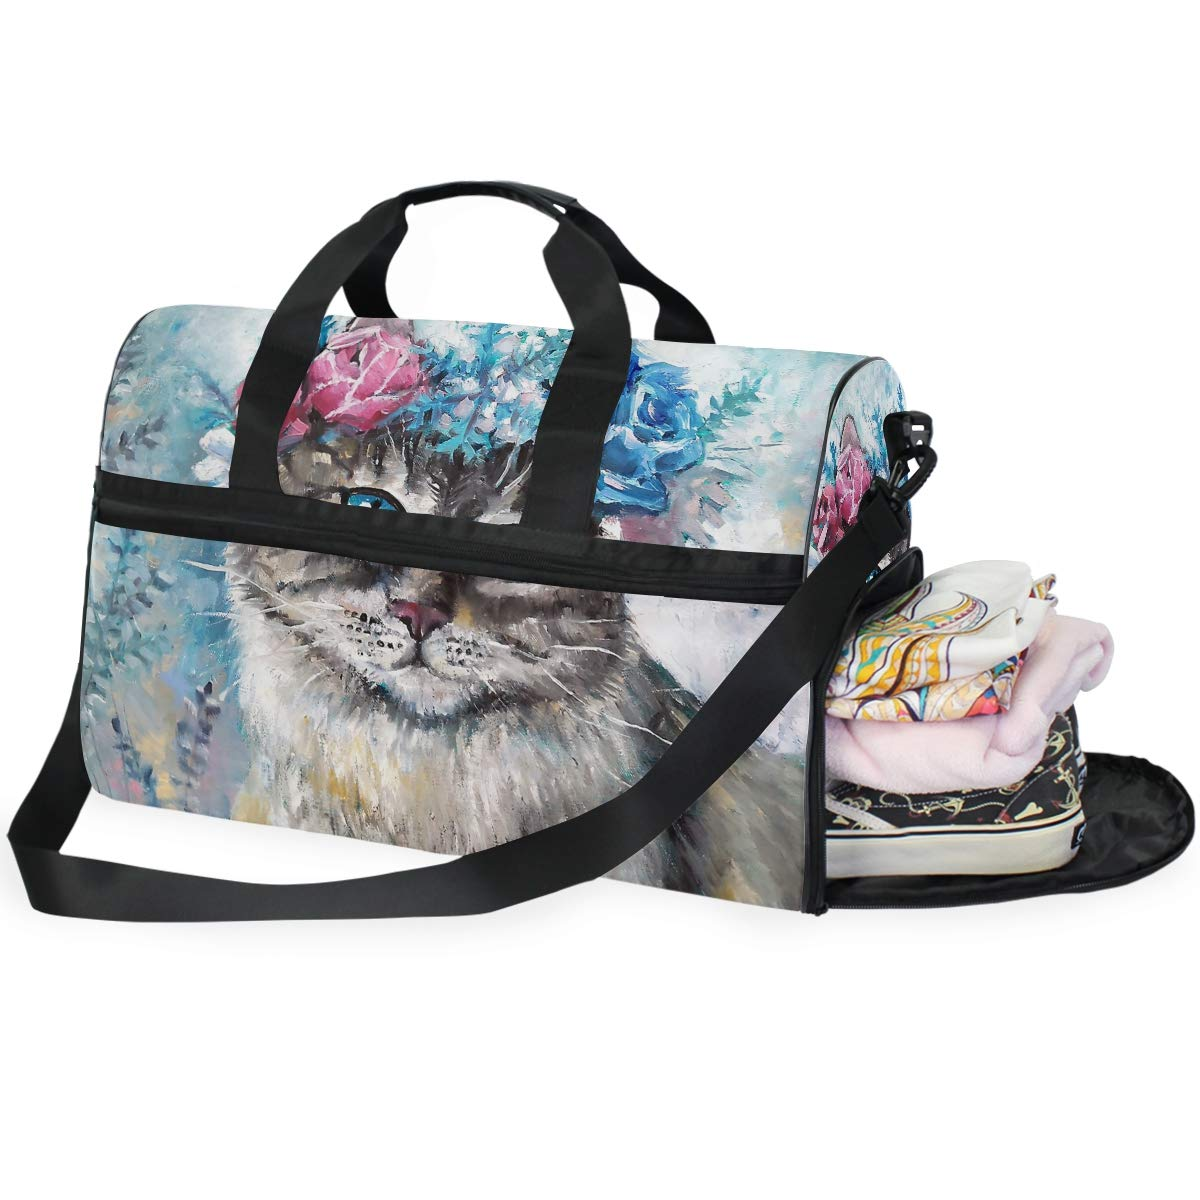 Travel Duffel Bag Vintage Colorful Flowers Cat Waterproof Lightweight Luggage bag for Sports Vacation Gym